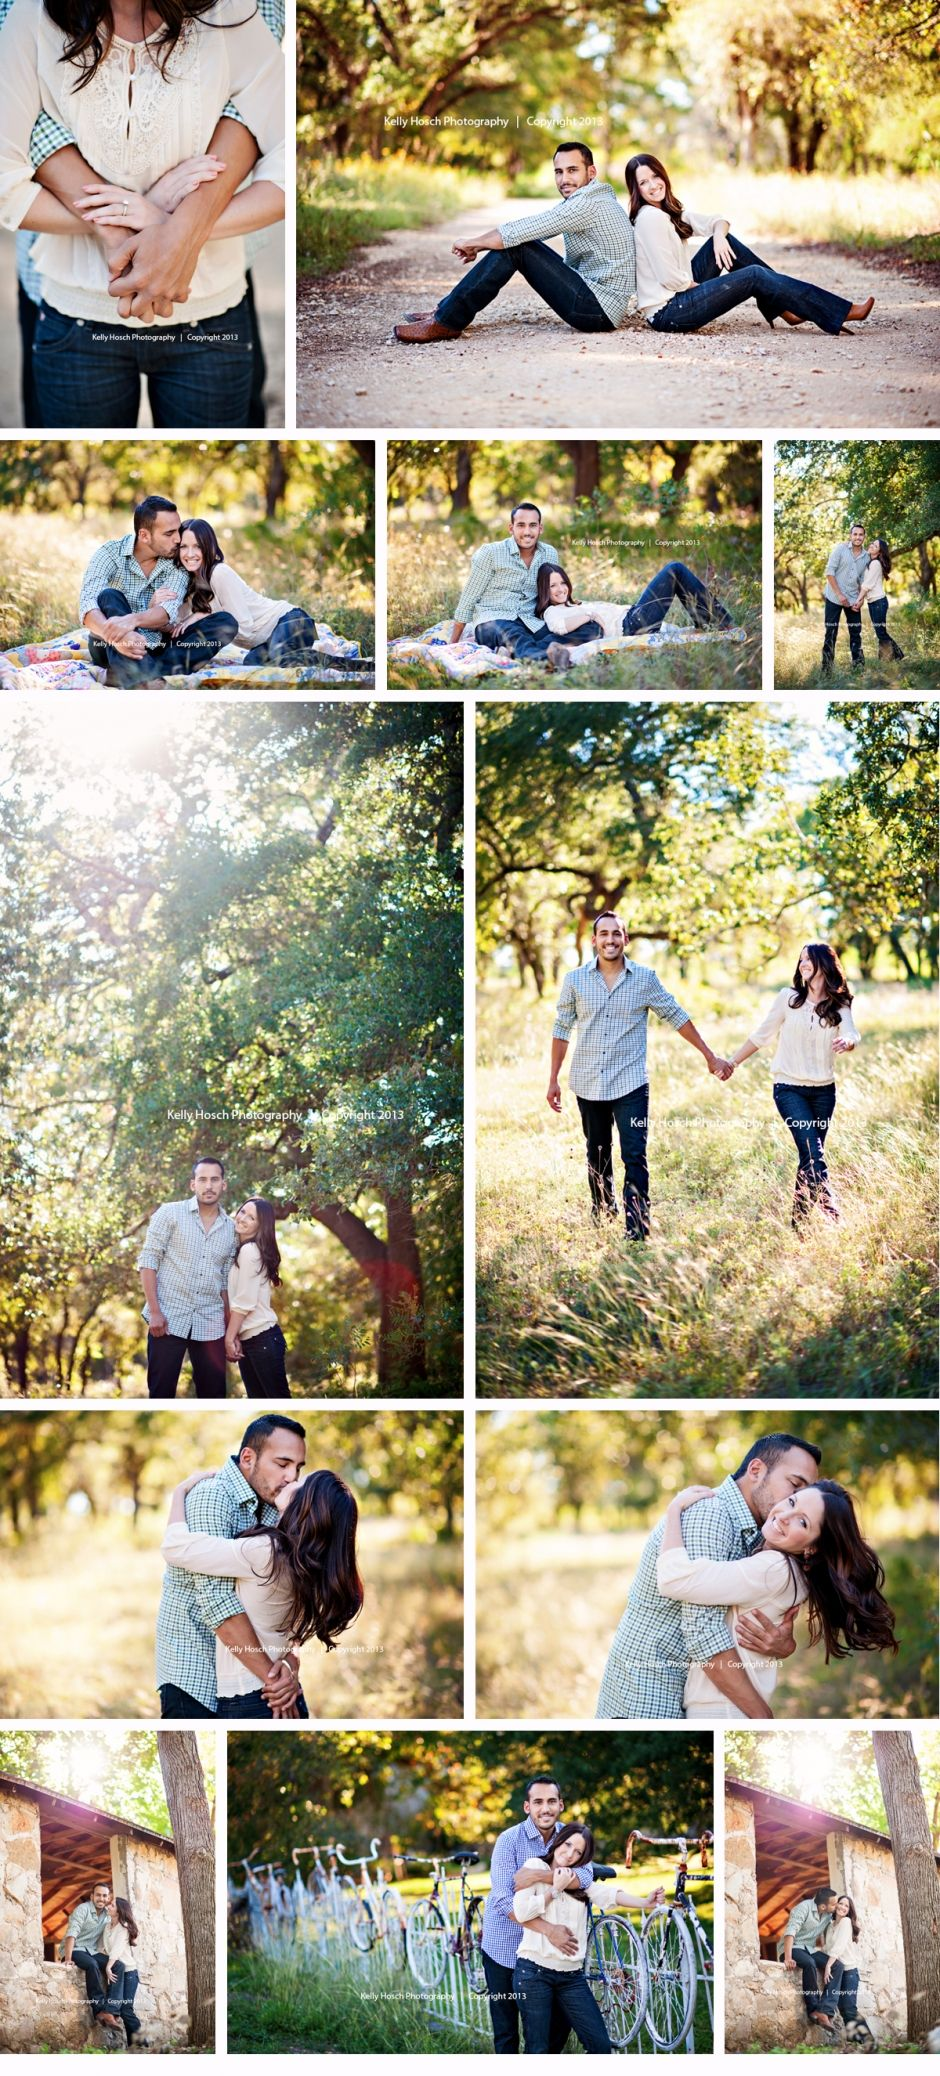 I want an outdoor engagement session with a vintage look photography lighting kits